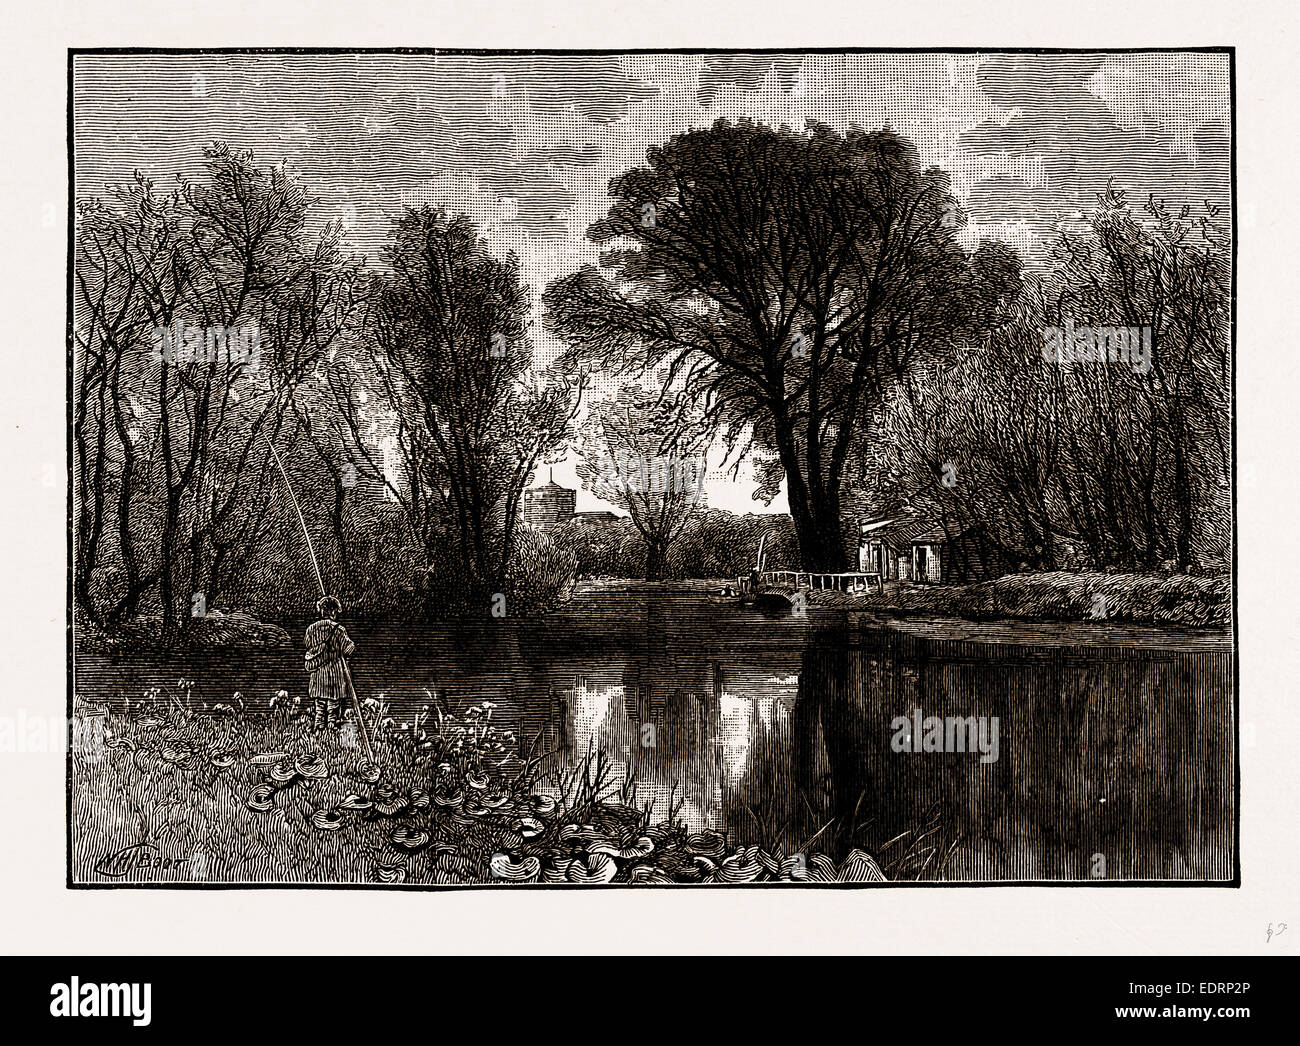 ON THE LEA, UK, engraving 1881 - 1884 - Stock Image